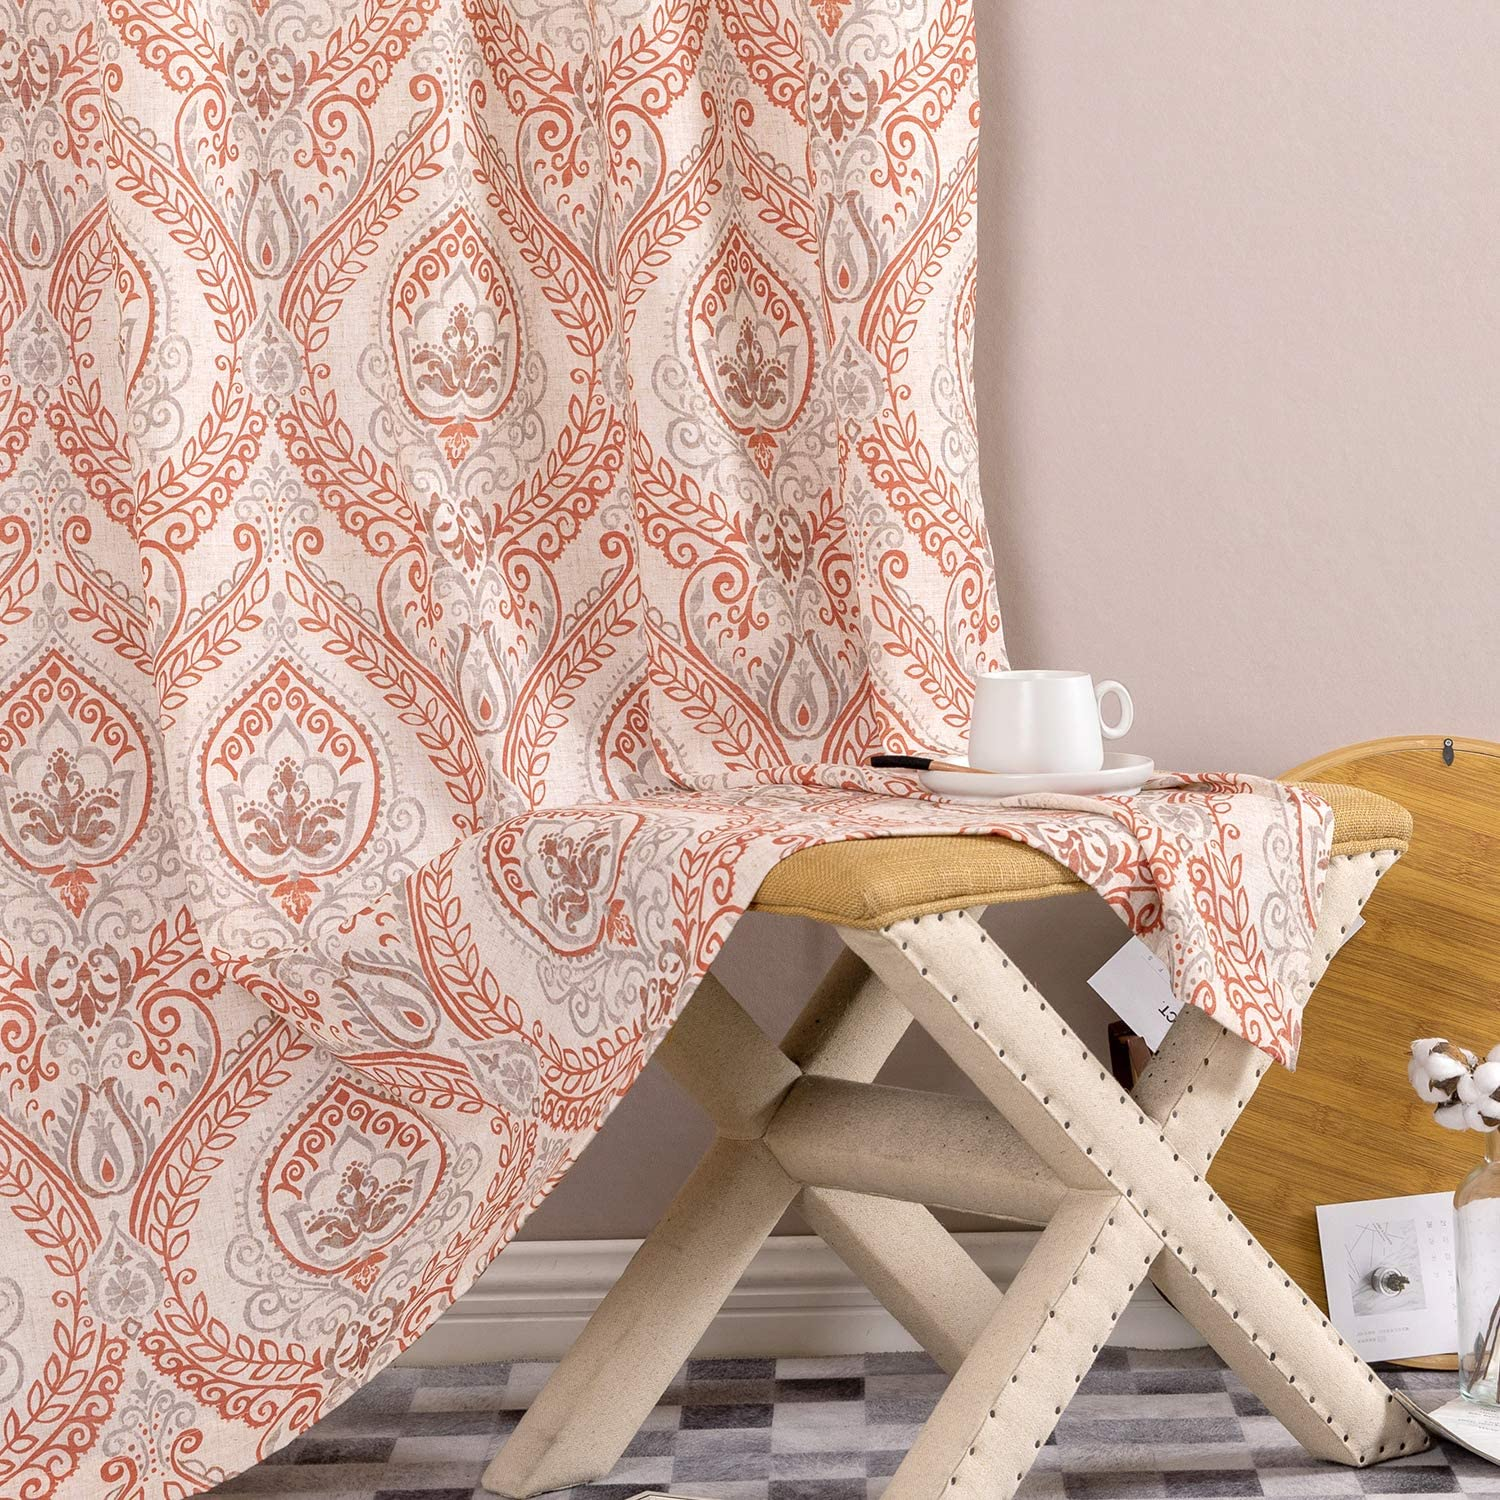 Linen Max 75% OFF Curtains Tulsa Mall for Living Room with D JINCHAN Vintage Multicolor